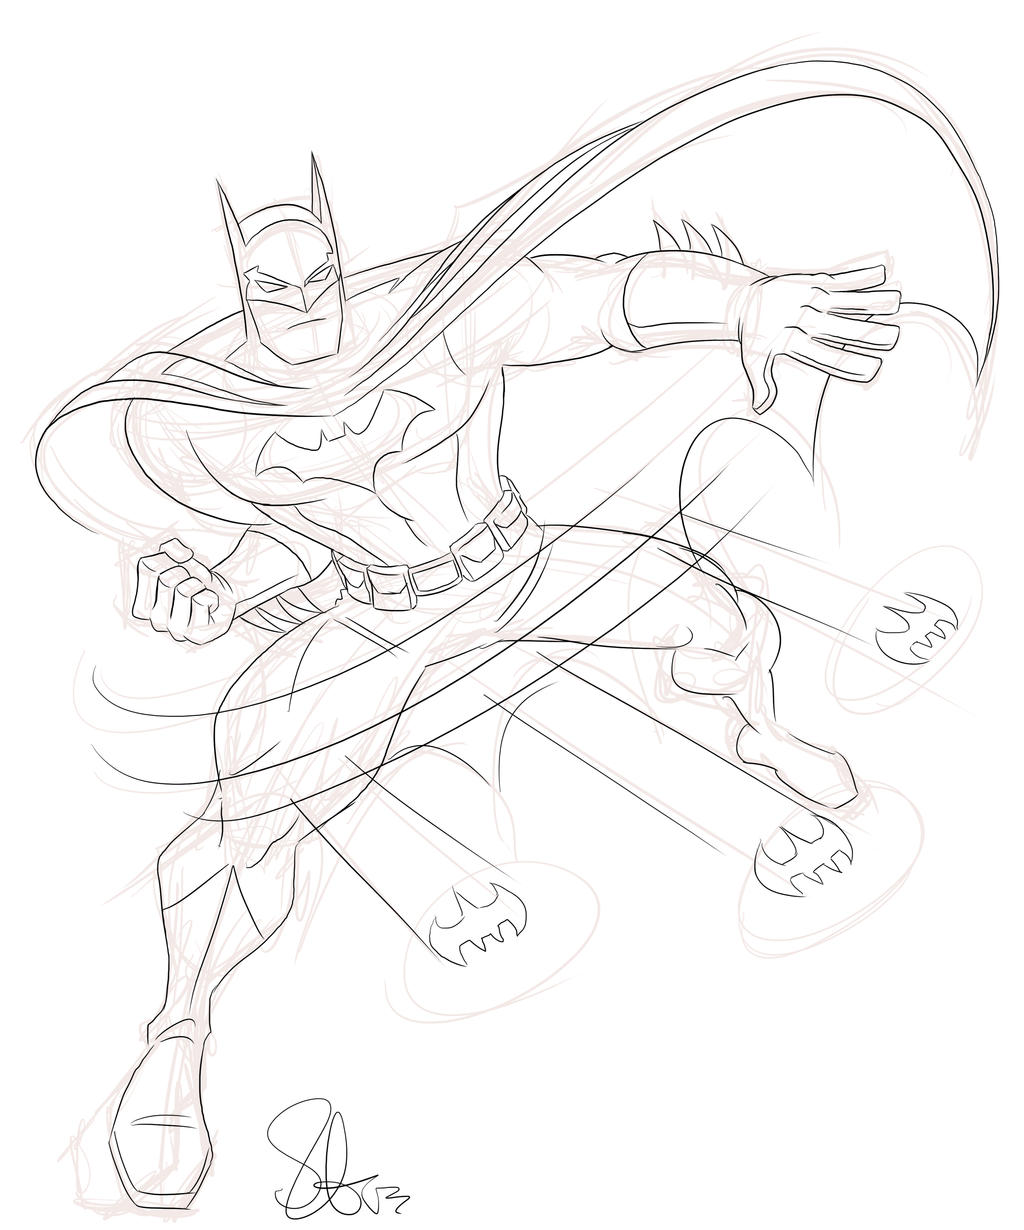 Quick Batman sketch by scootah91